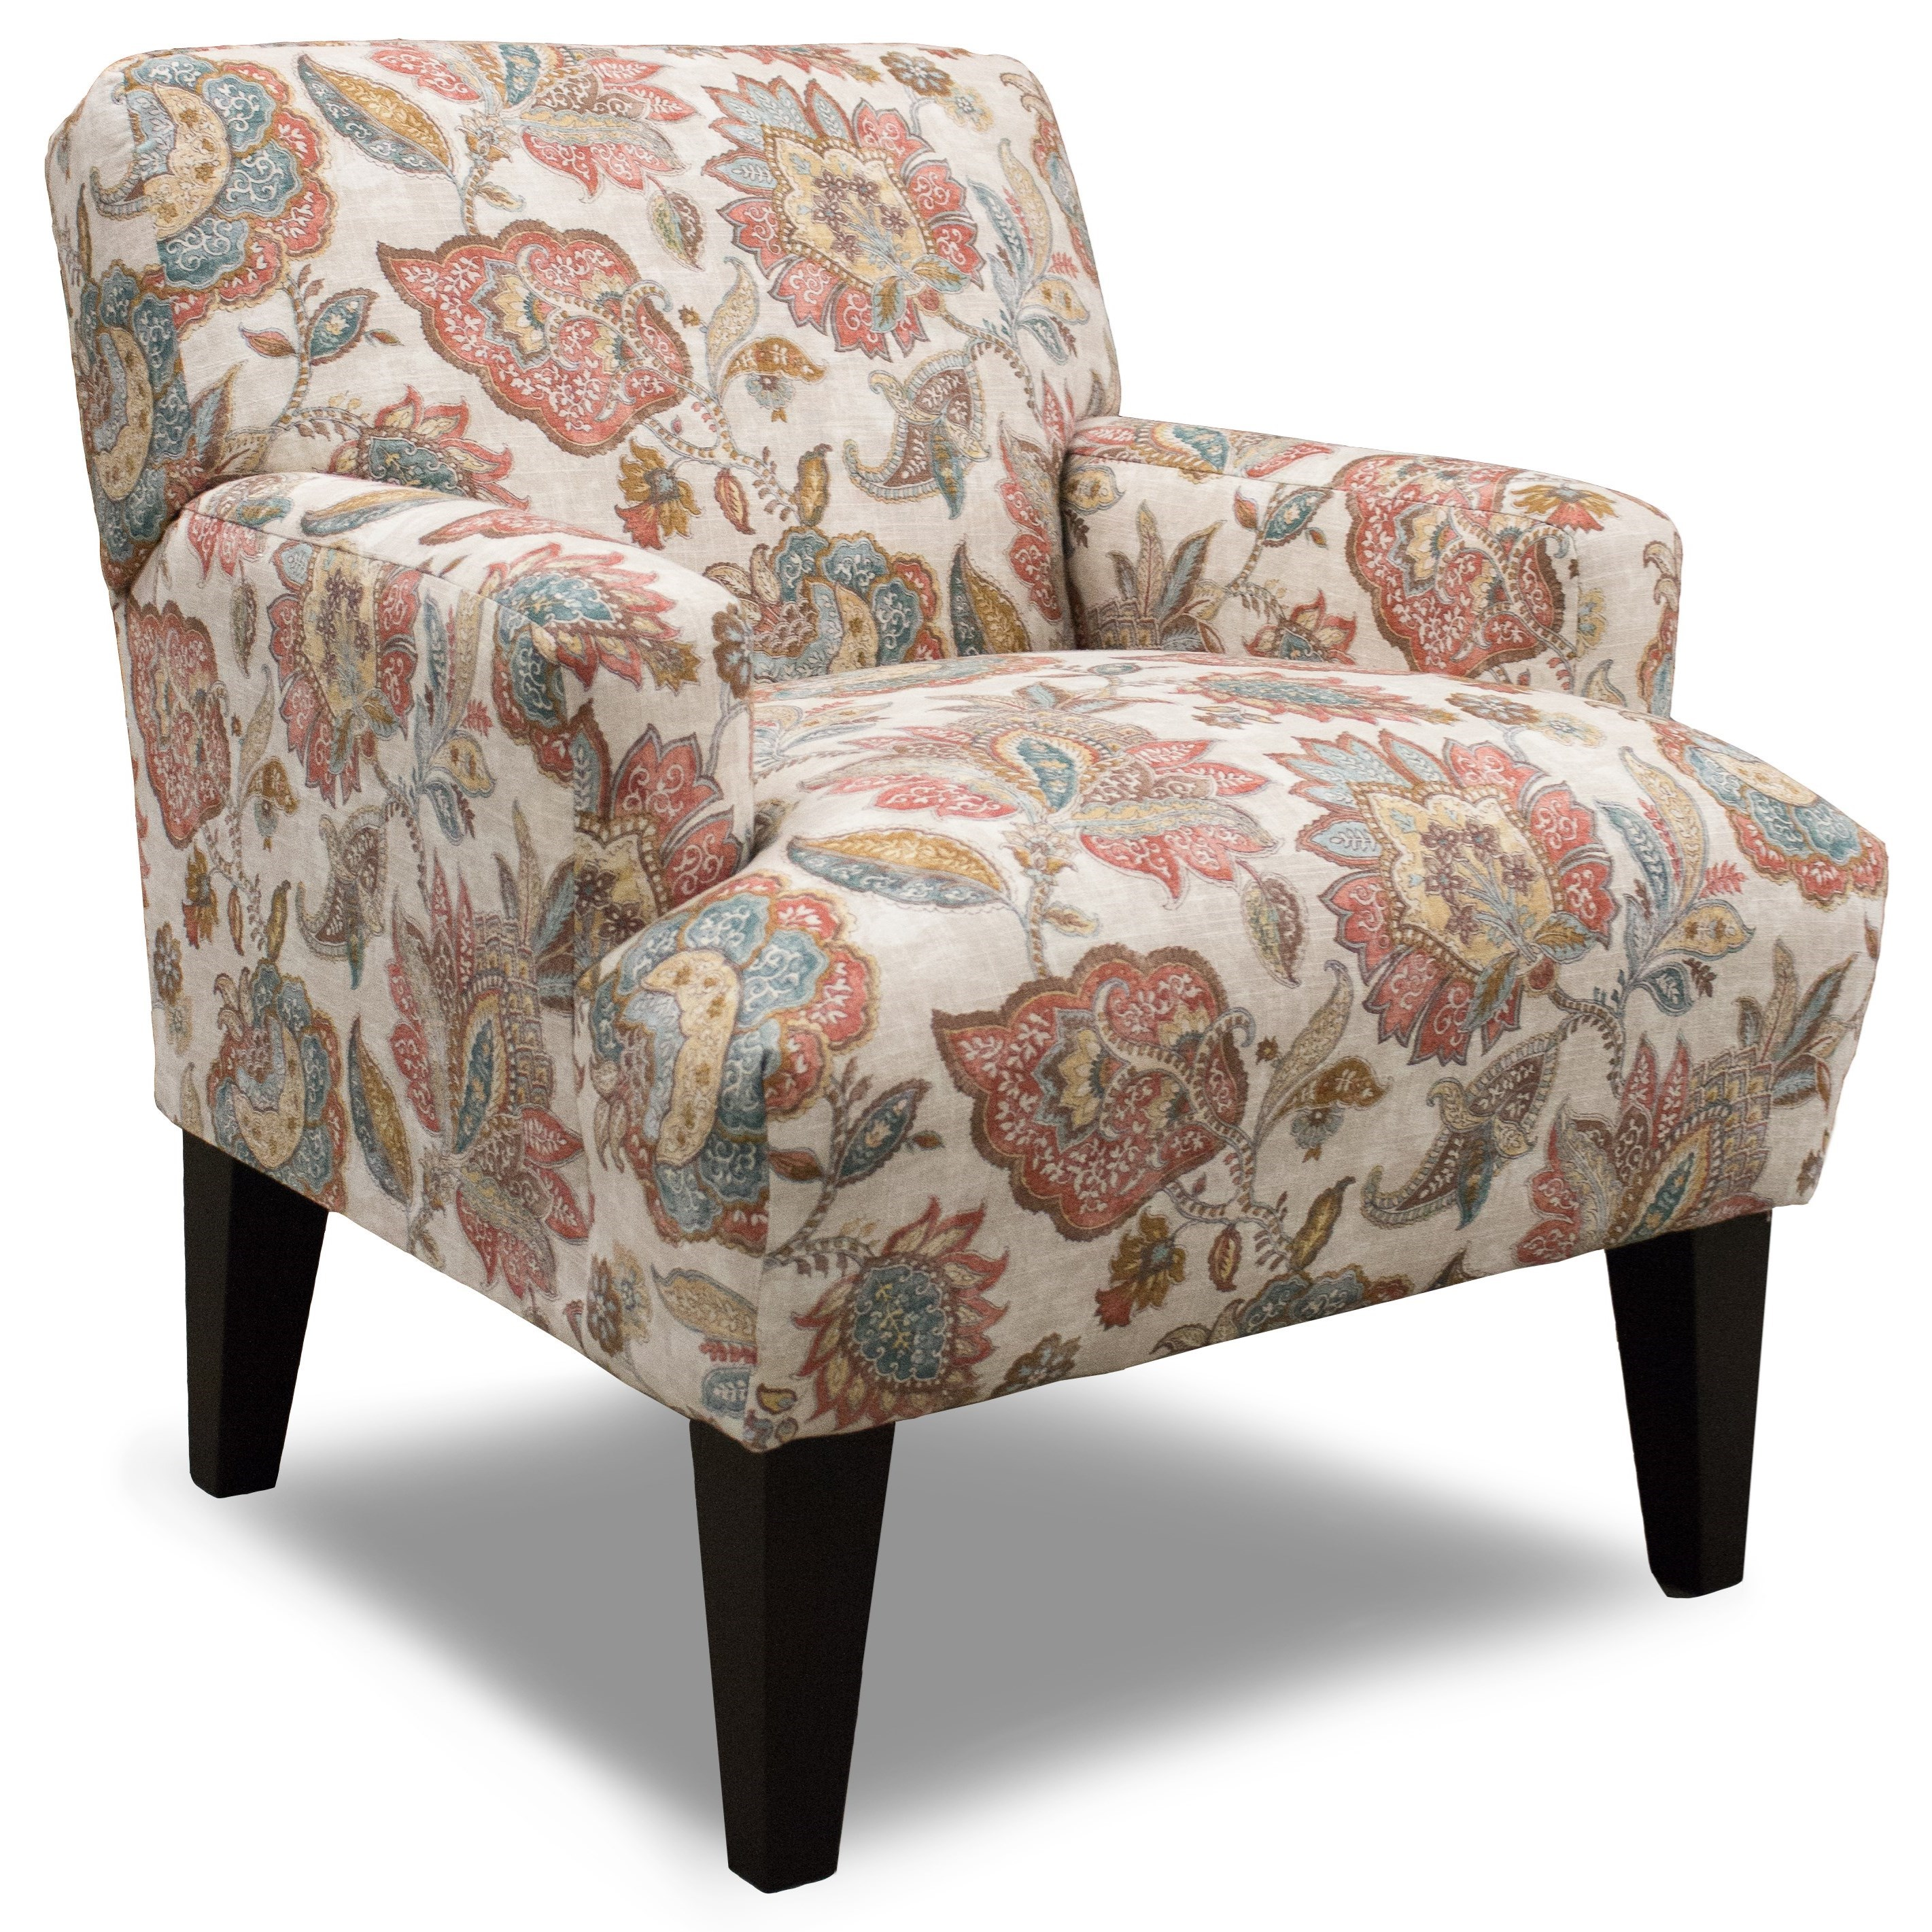 Cushion Chair Club Chairs Randi Club Chair By Best Home Furnishings At Lindy S Furniture Company